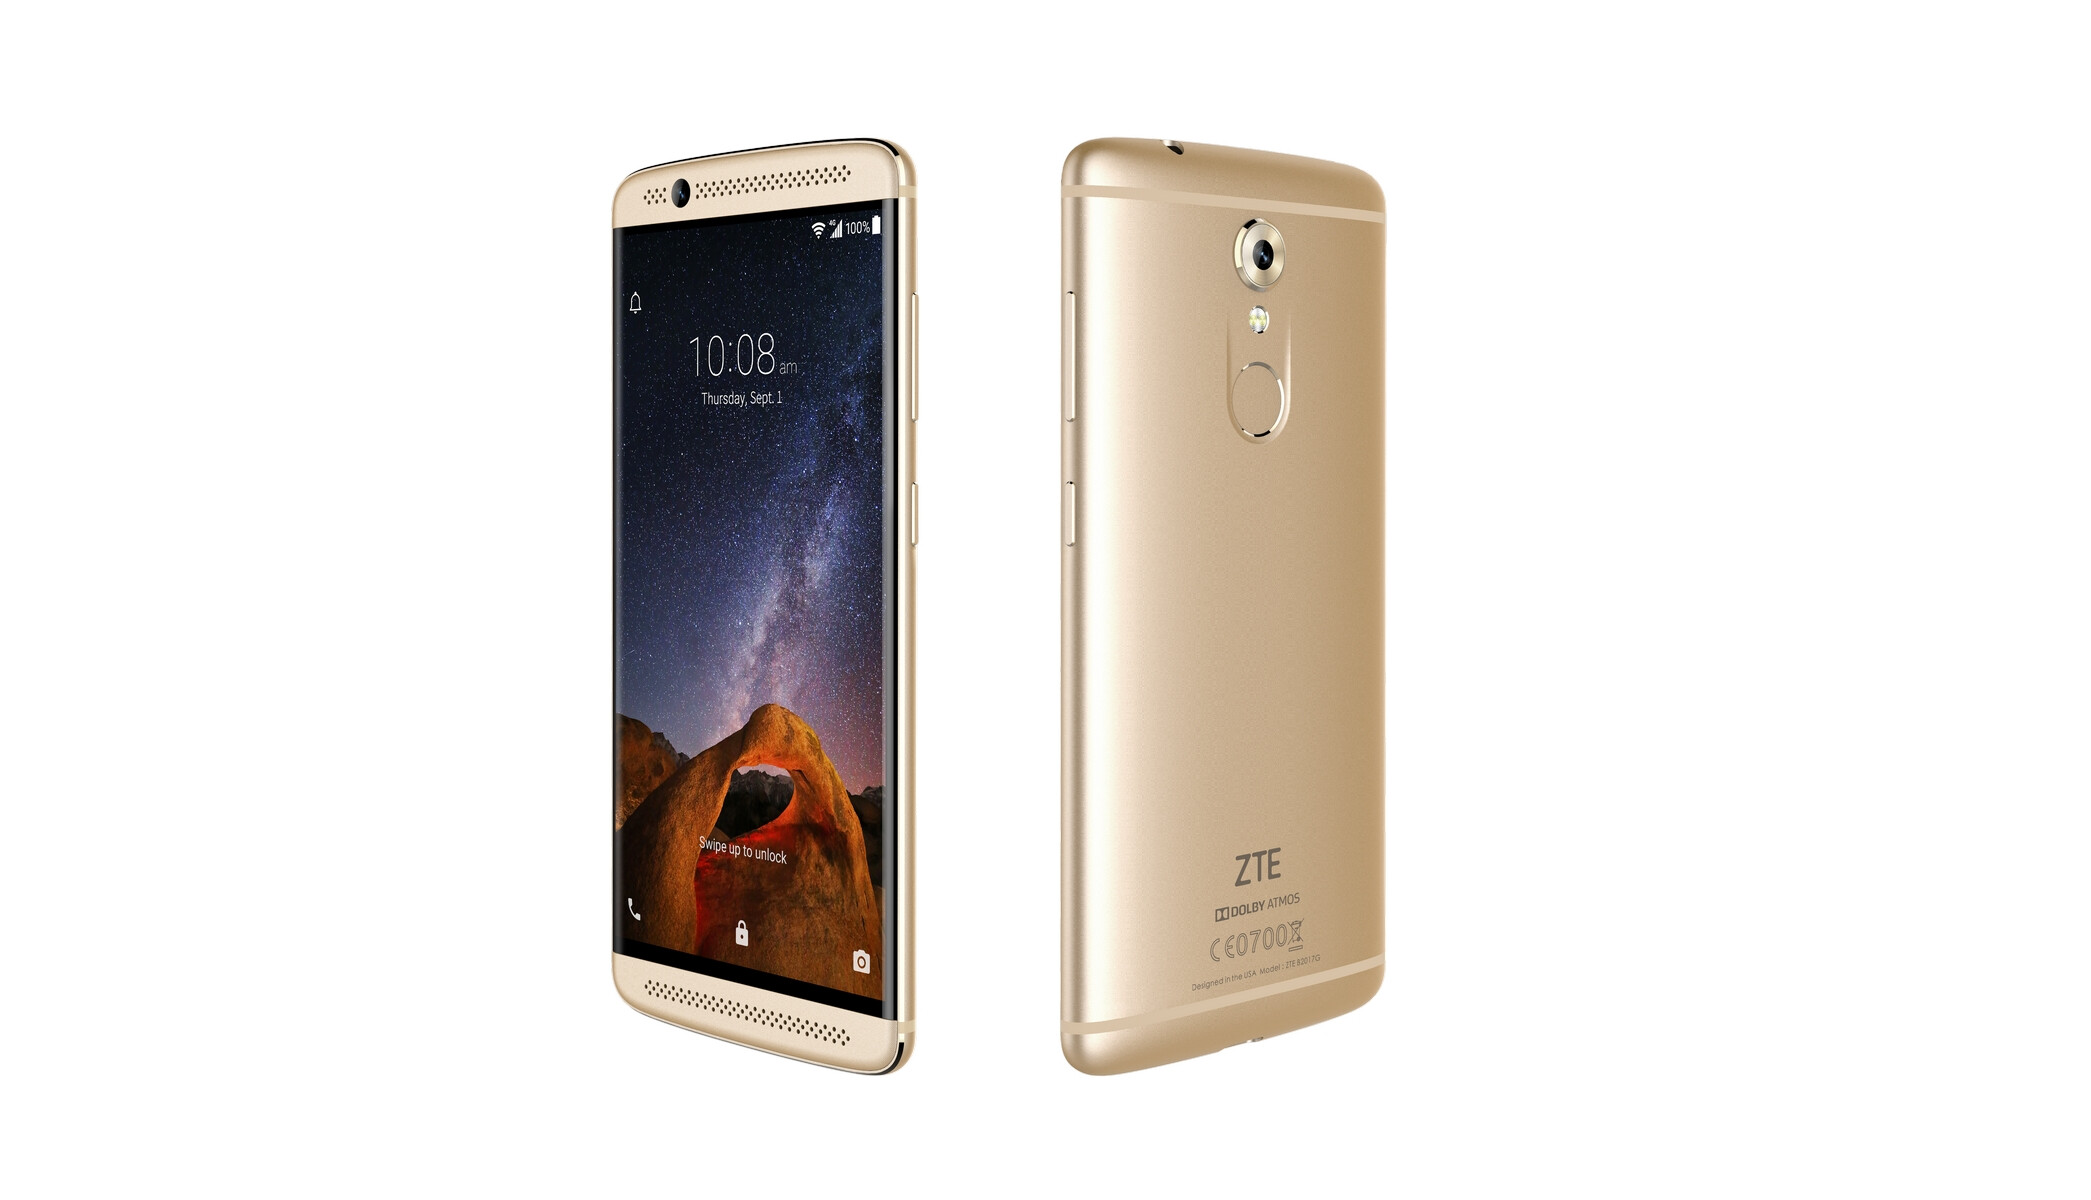 zte axon 7 sound quality can now find